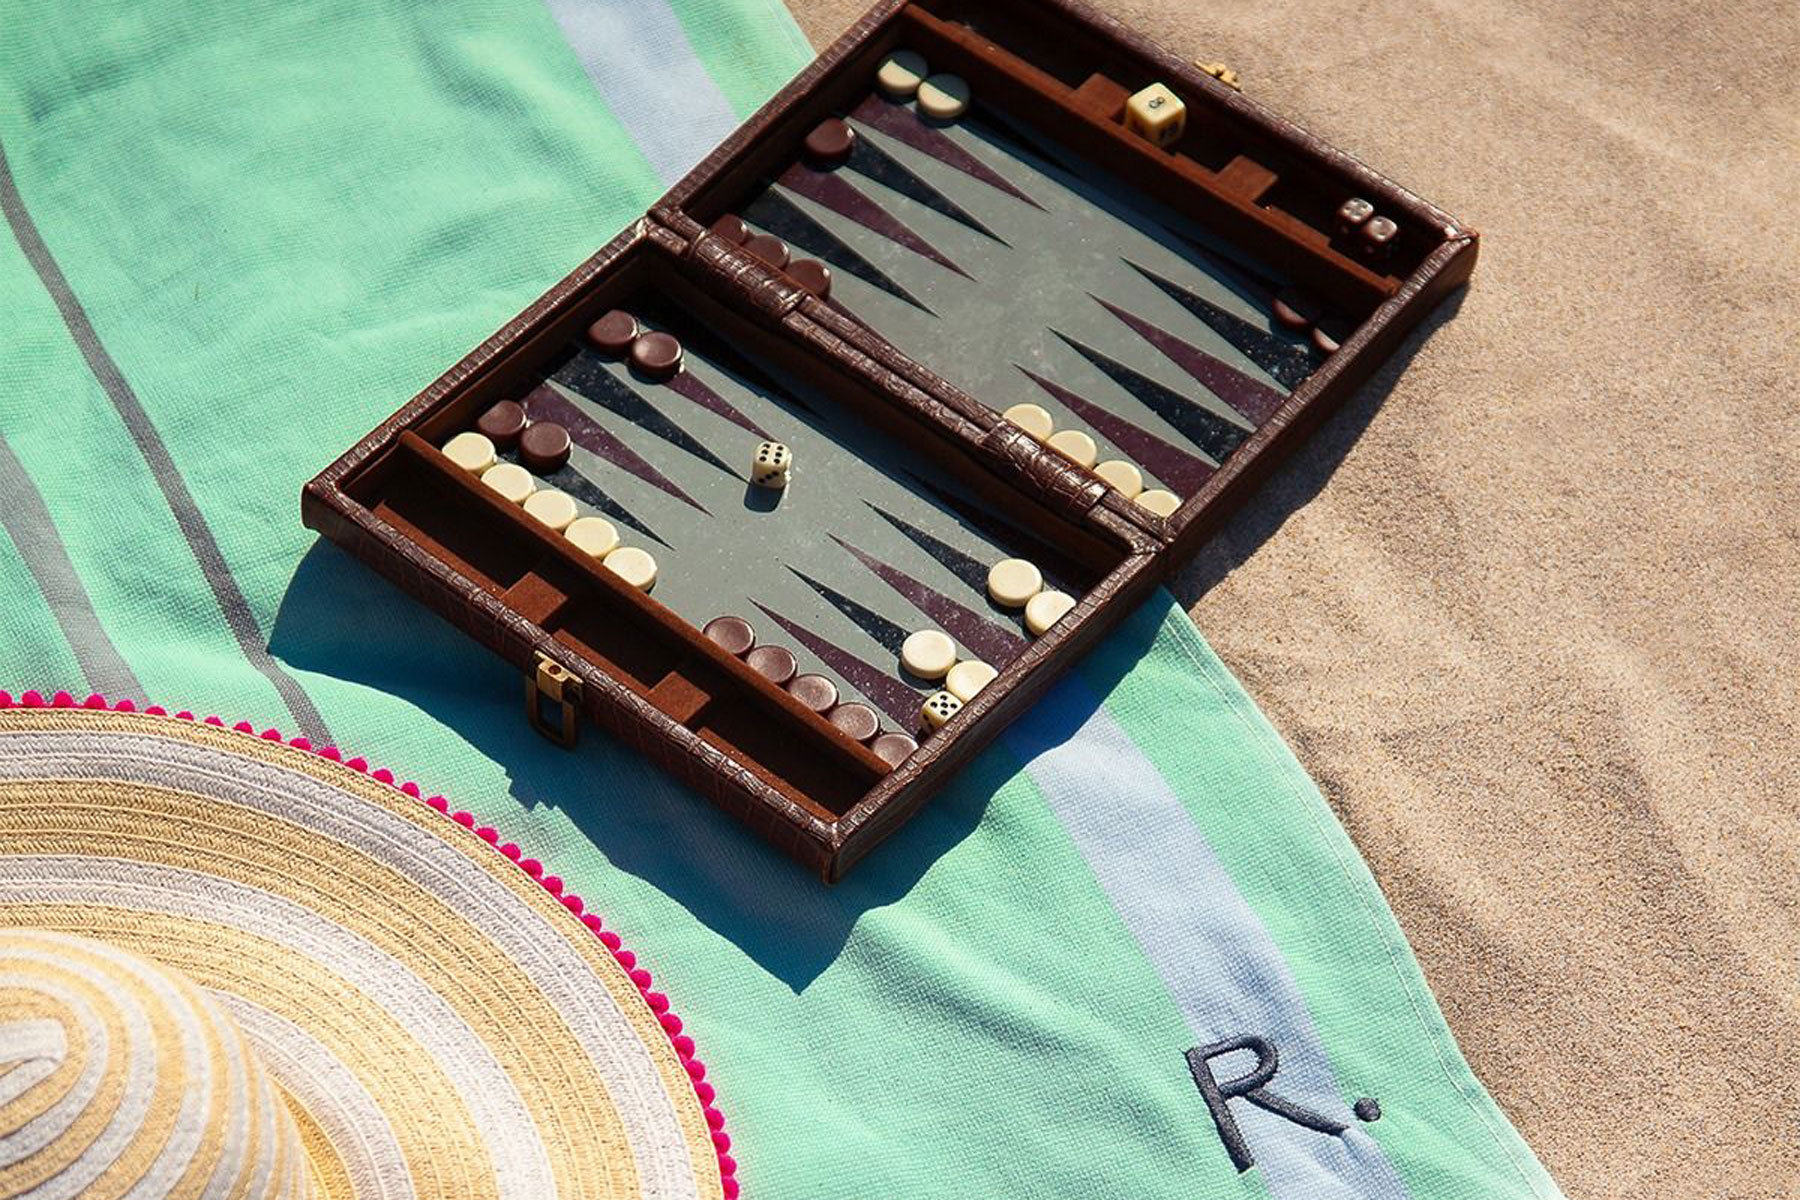 Green beach towel on sand with backgammon board